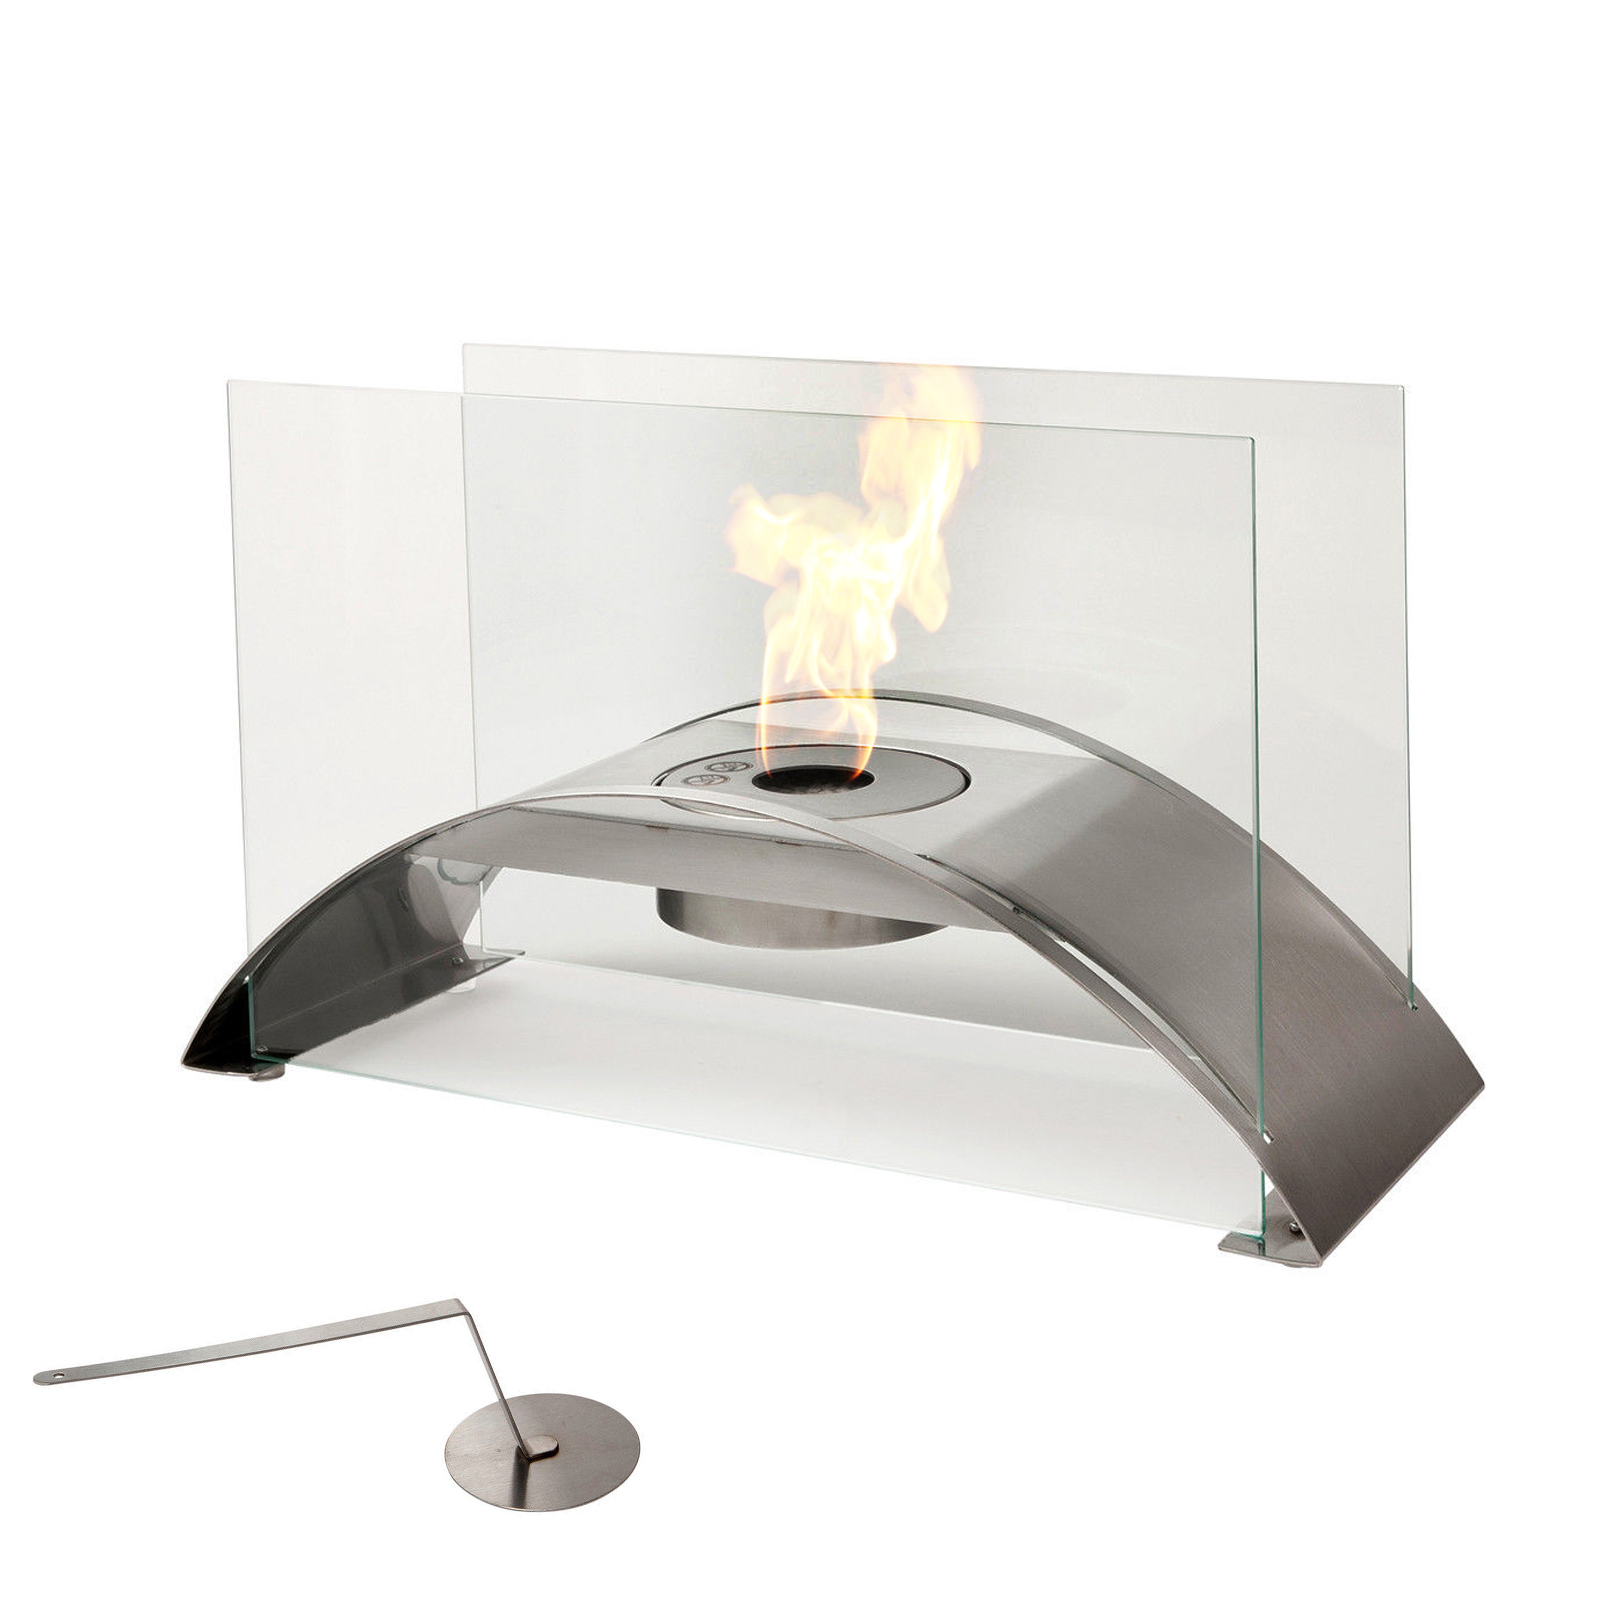 kreta bio ethanol fireplace stainless steel gel table silver new ebay. Black Bedroom Furniture Sets. Home Design Ideas